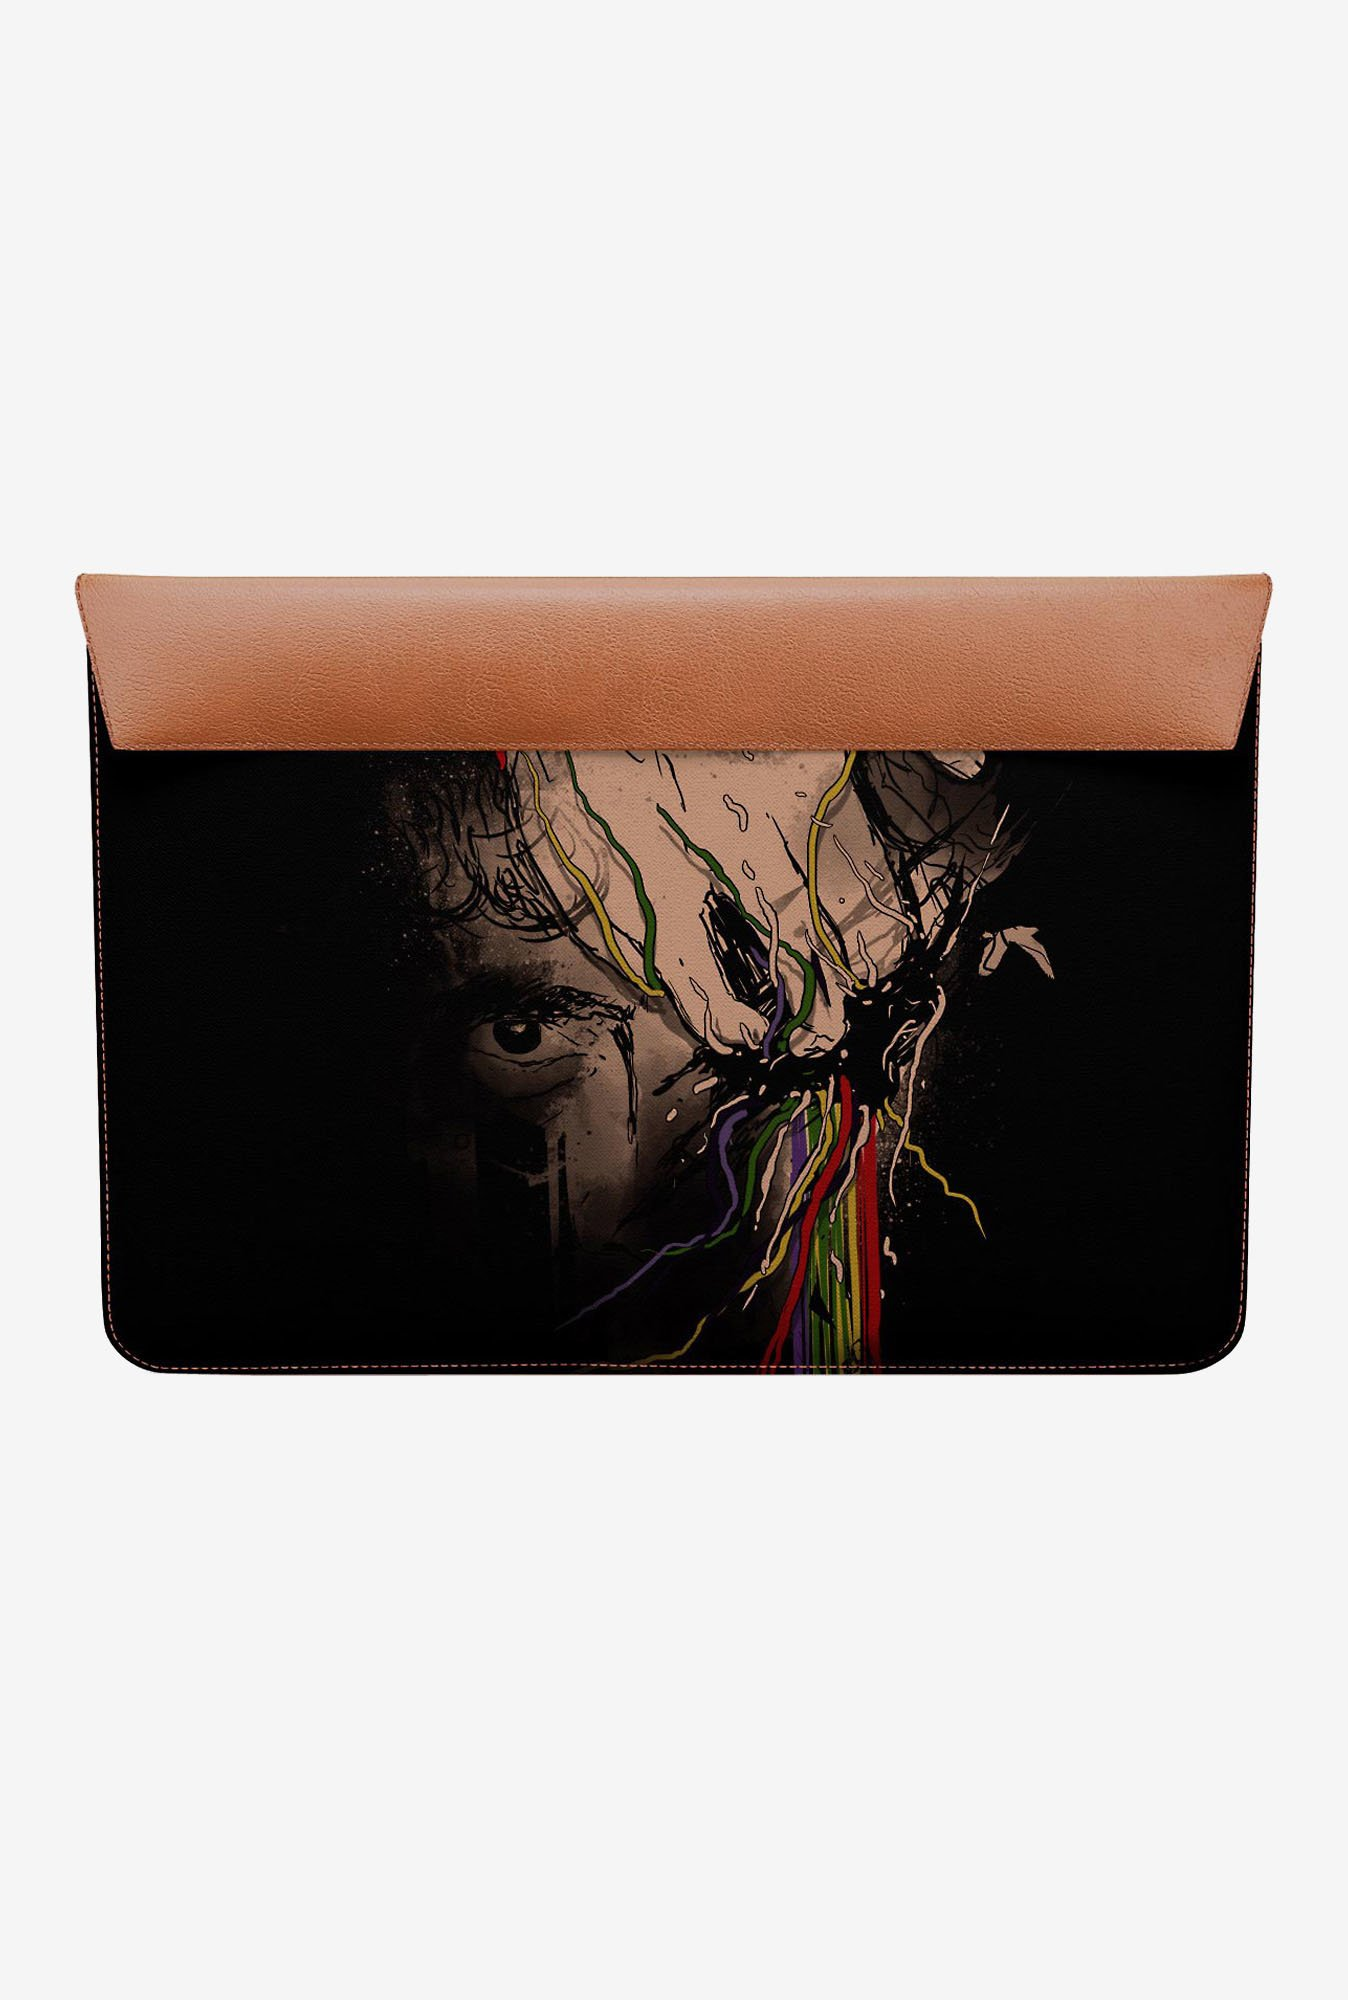 DailyObjects The Terror MacBook 12 Envelope Sleeve